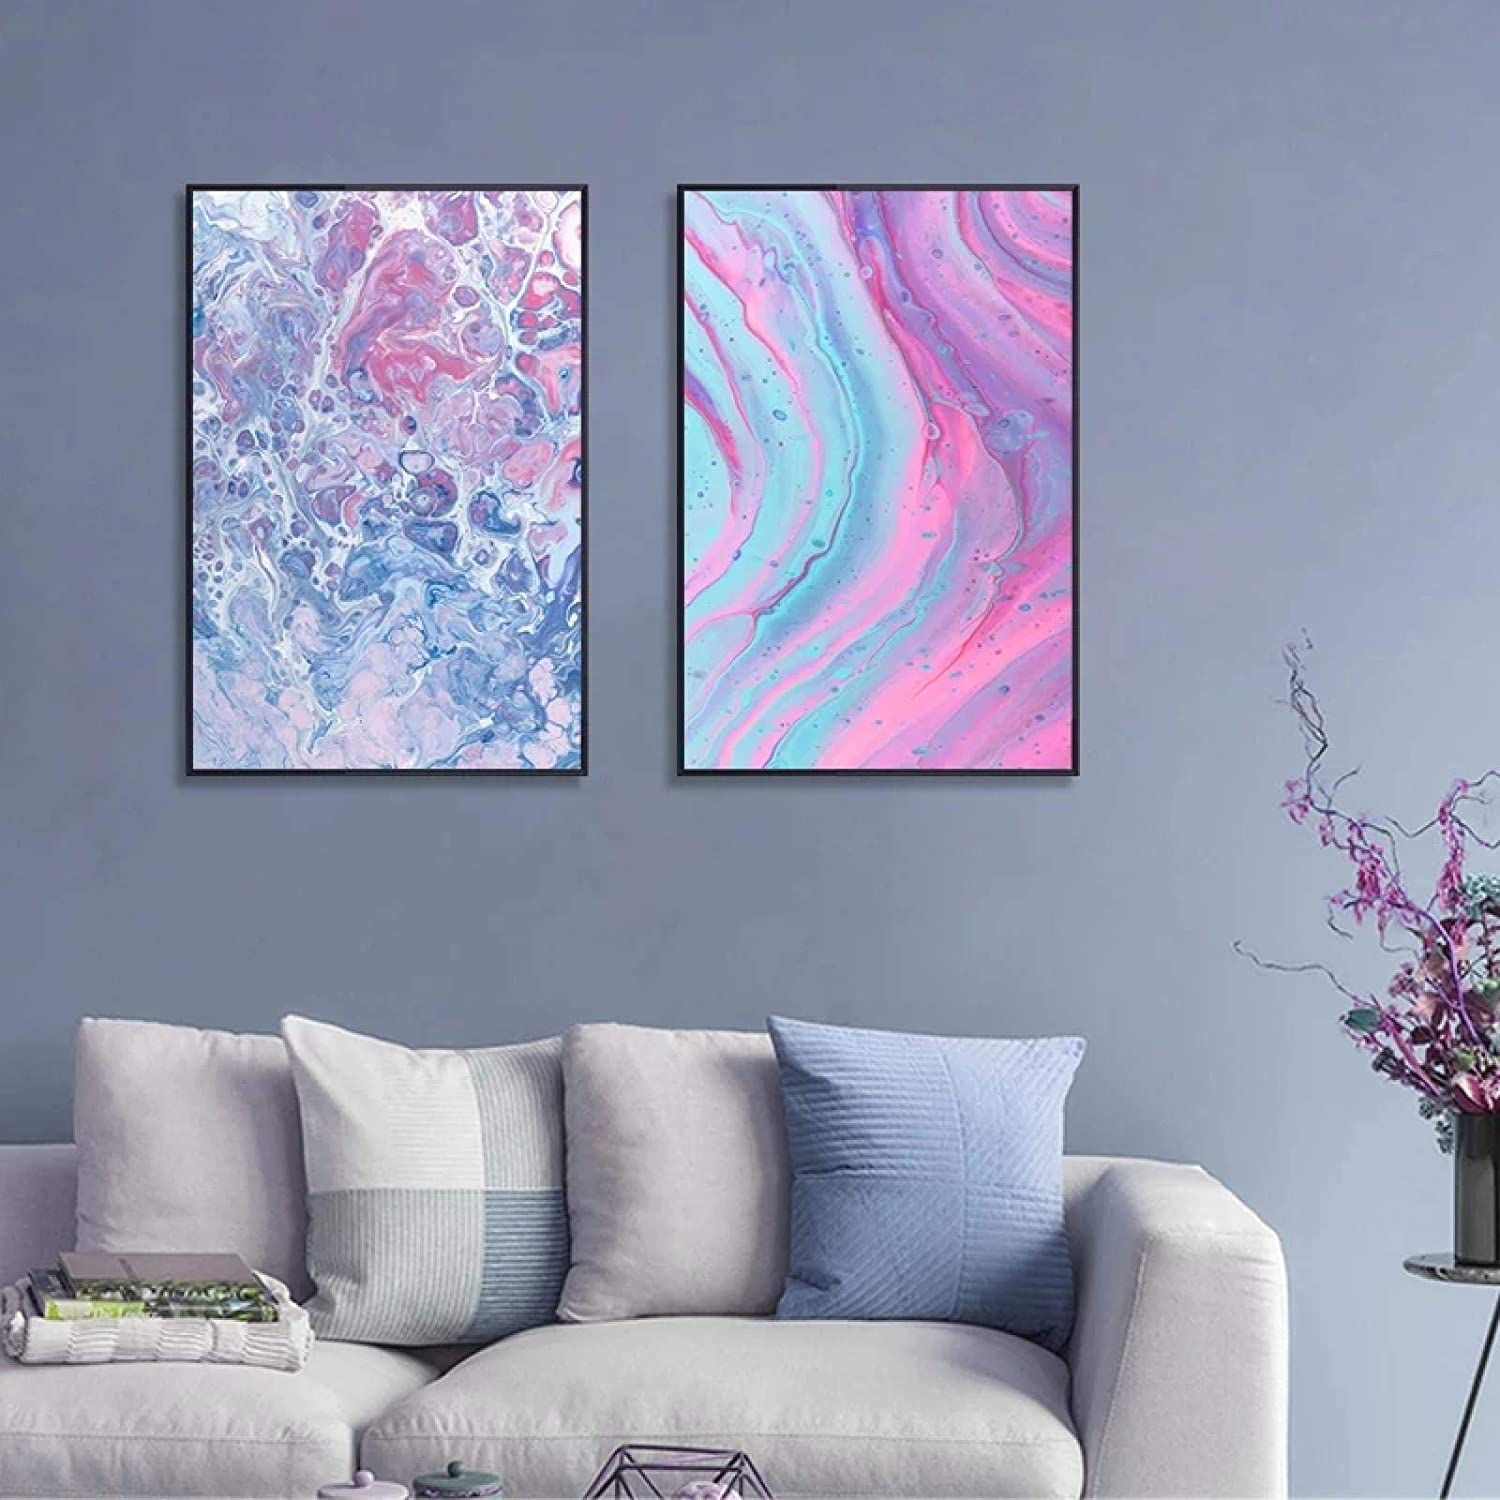 Geometric Canvas Modern Nordic Abstract Marble W Flower Colorful Sale Max 63% OFF special price